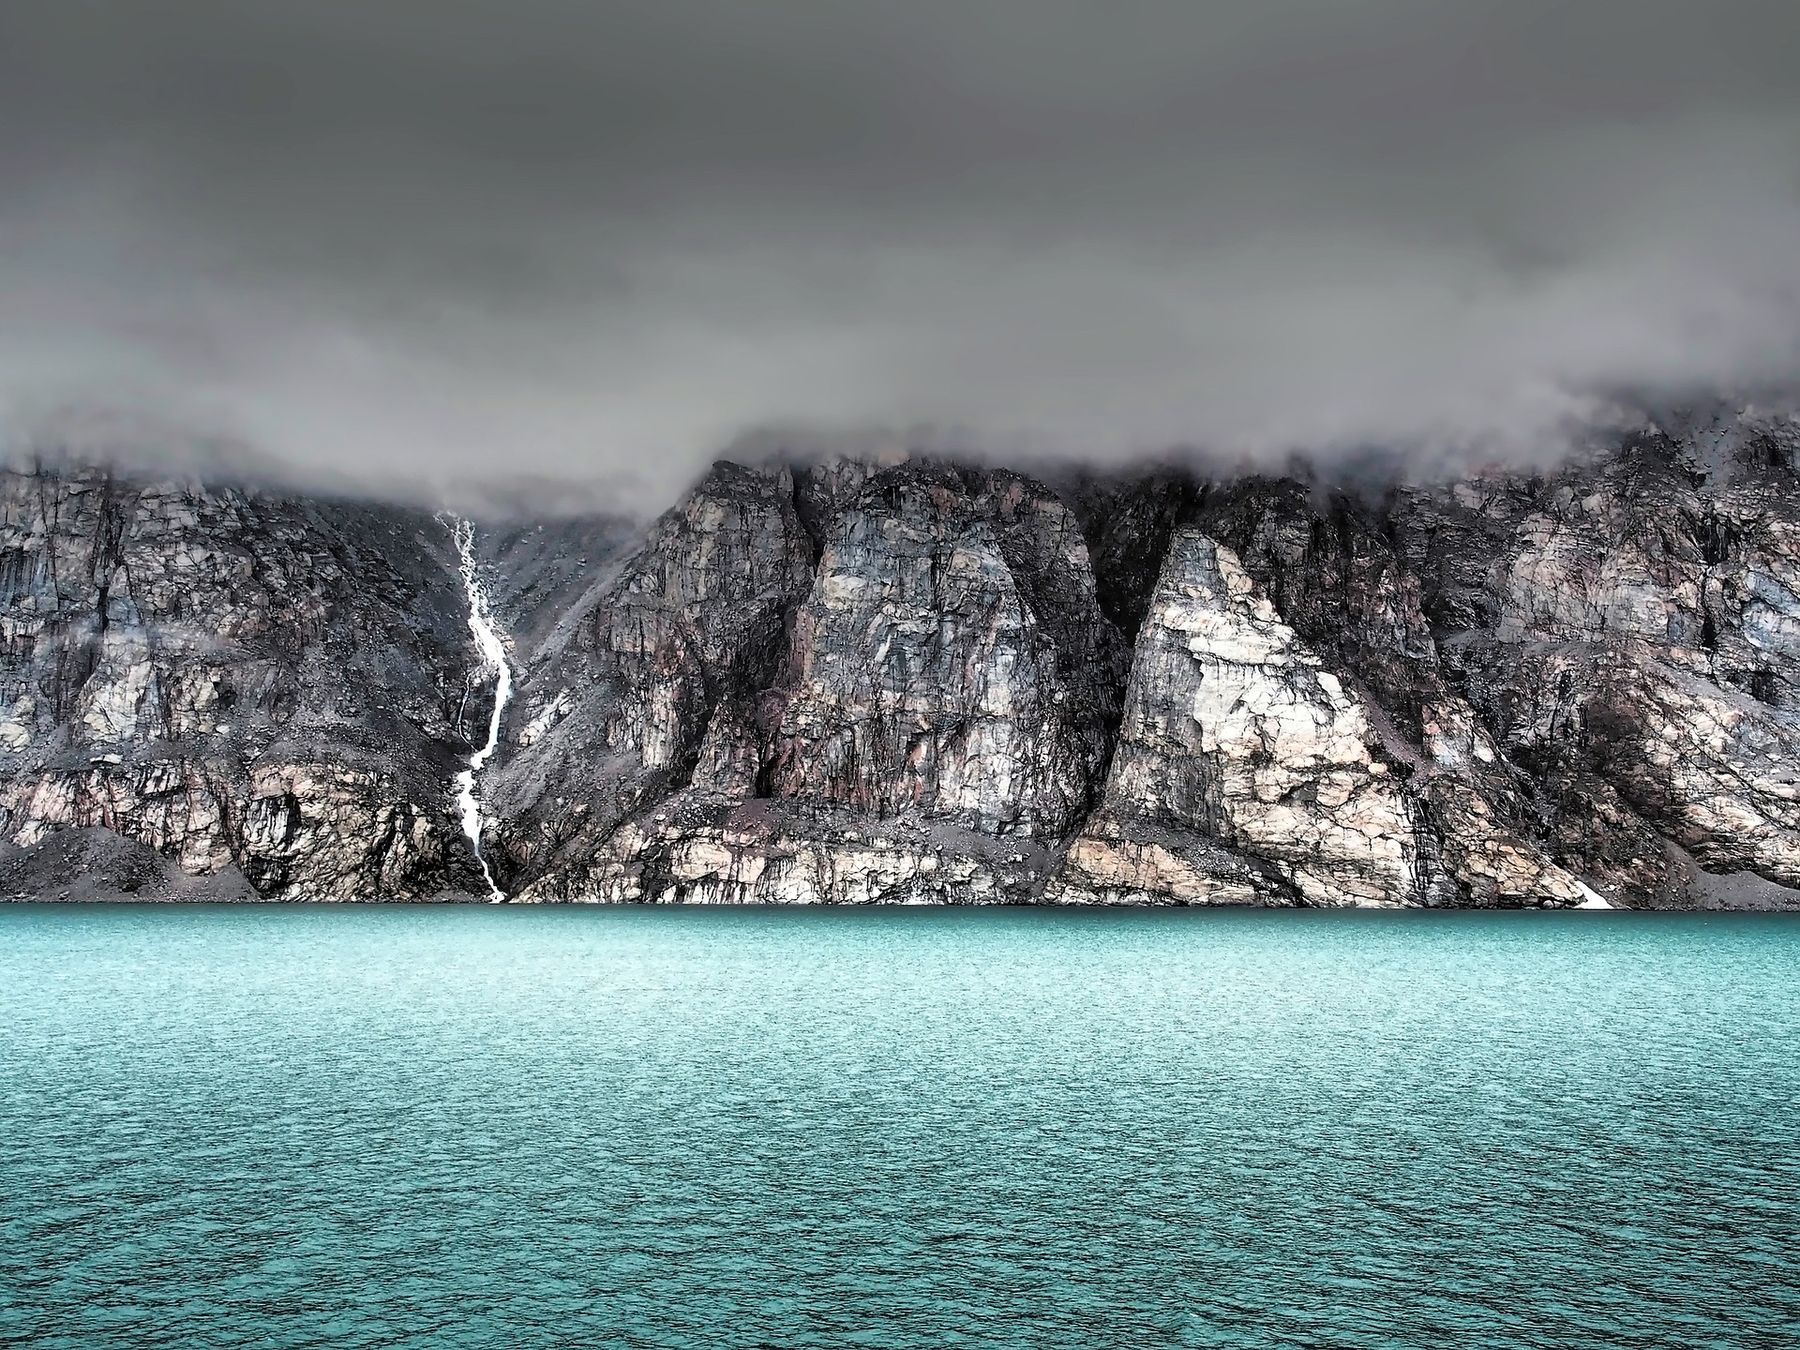 clouds, rocks, and sea in Baffin Island, a large and remote island in Canada